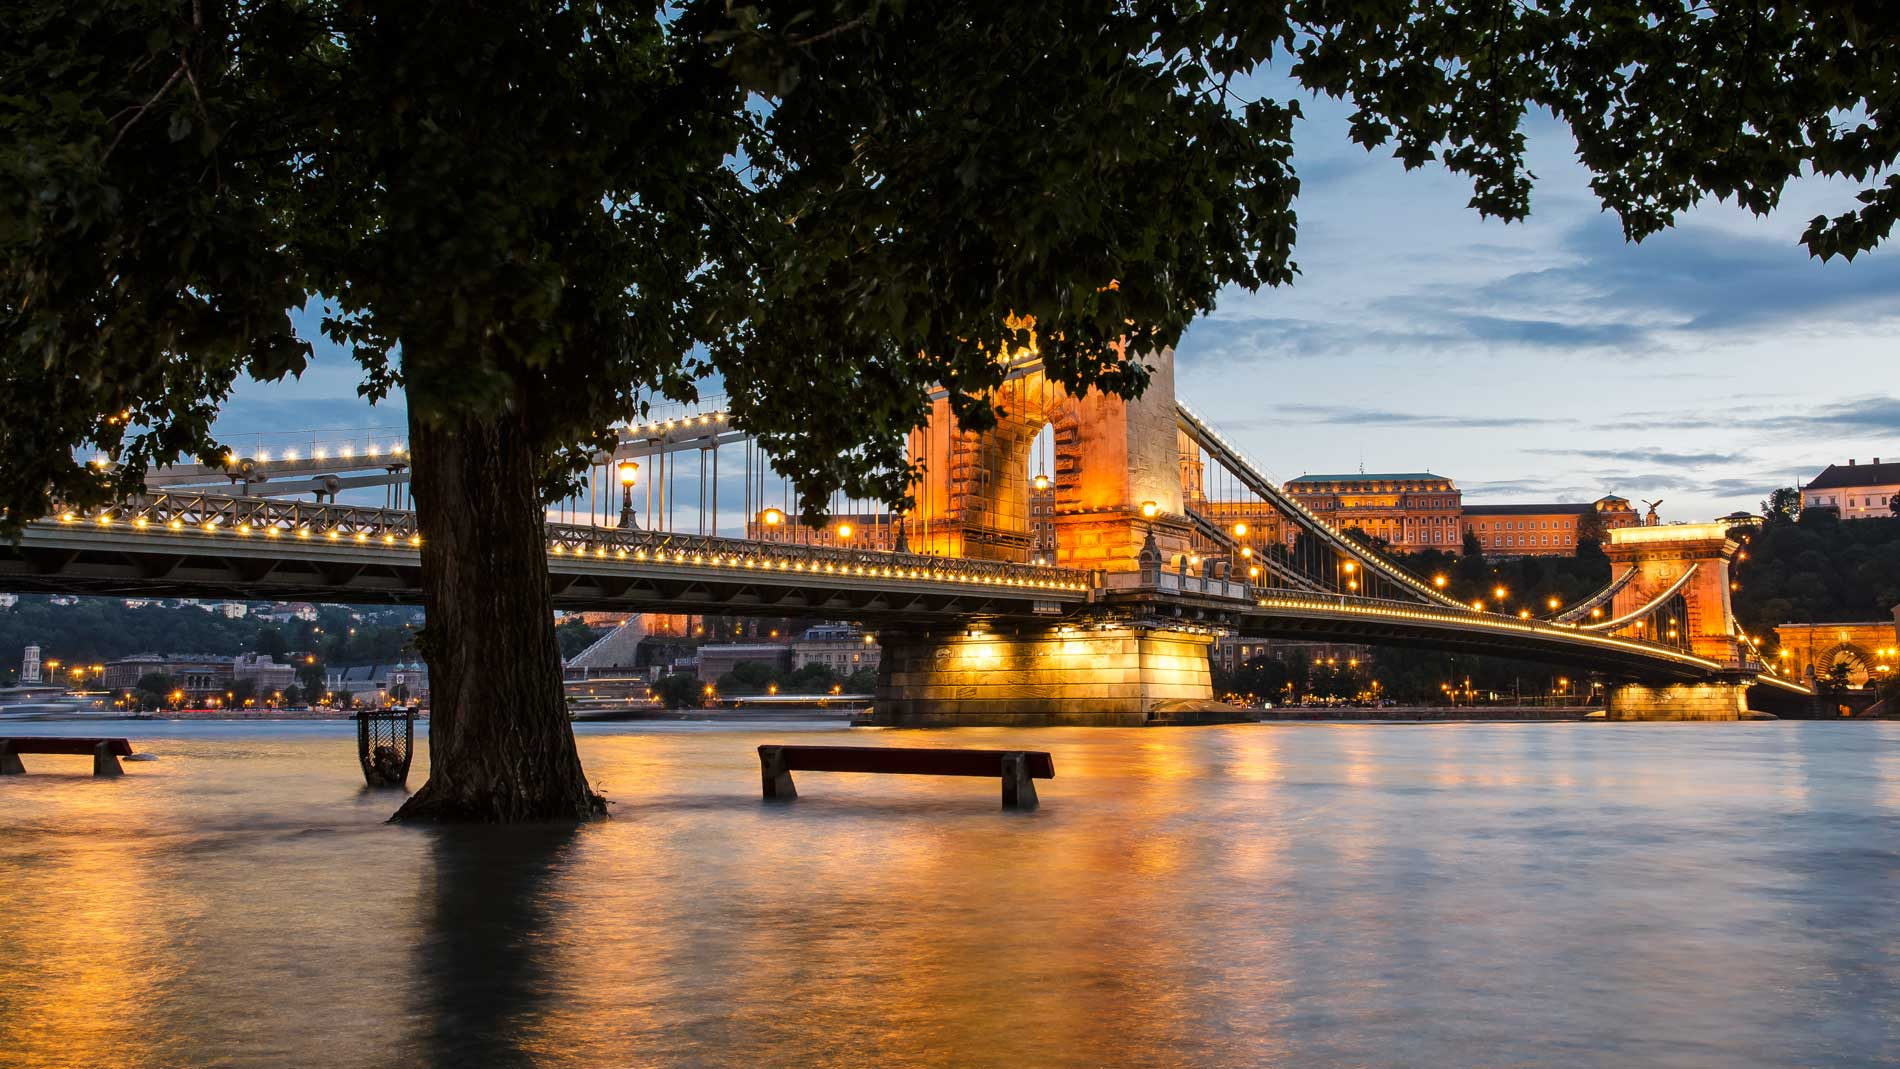 budapest_atthary_photography_danube_04